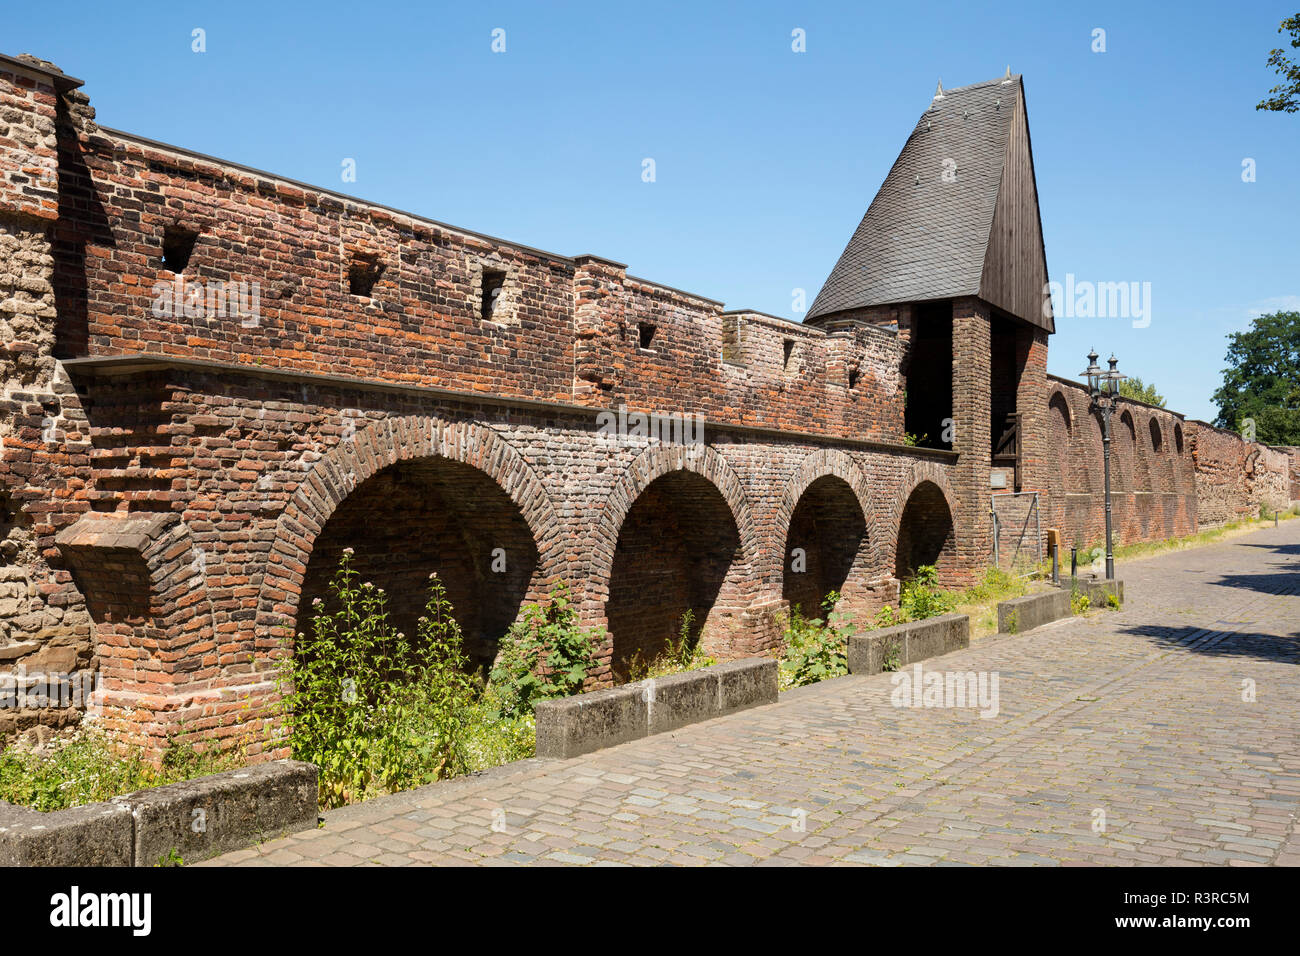 Germany, Duisburg, view of historical  town wall - Stock Image